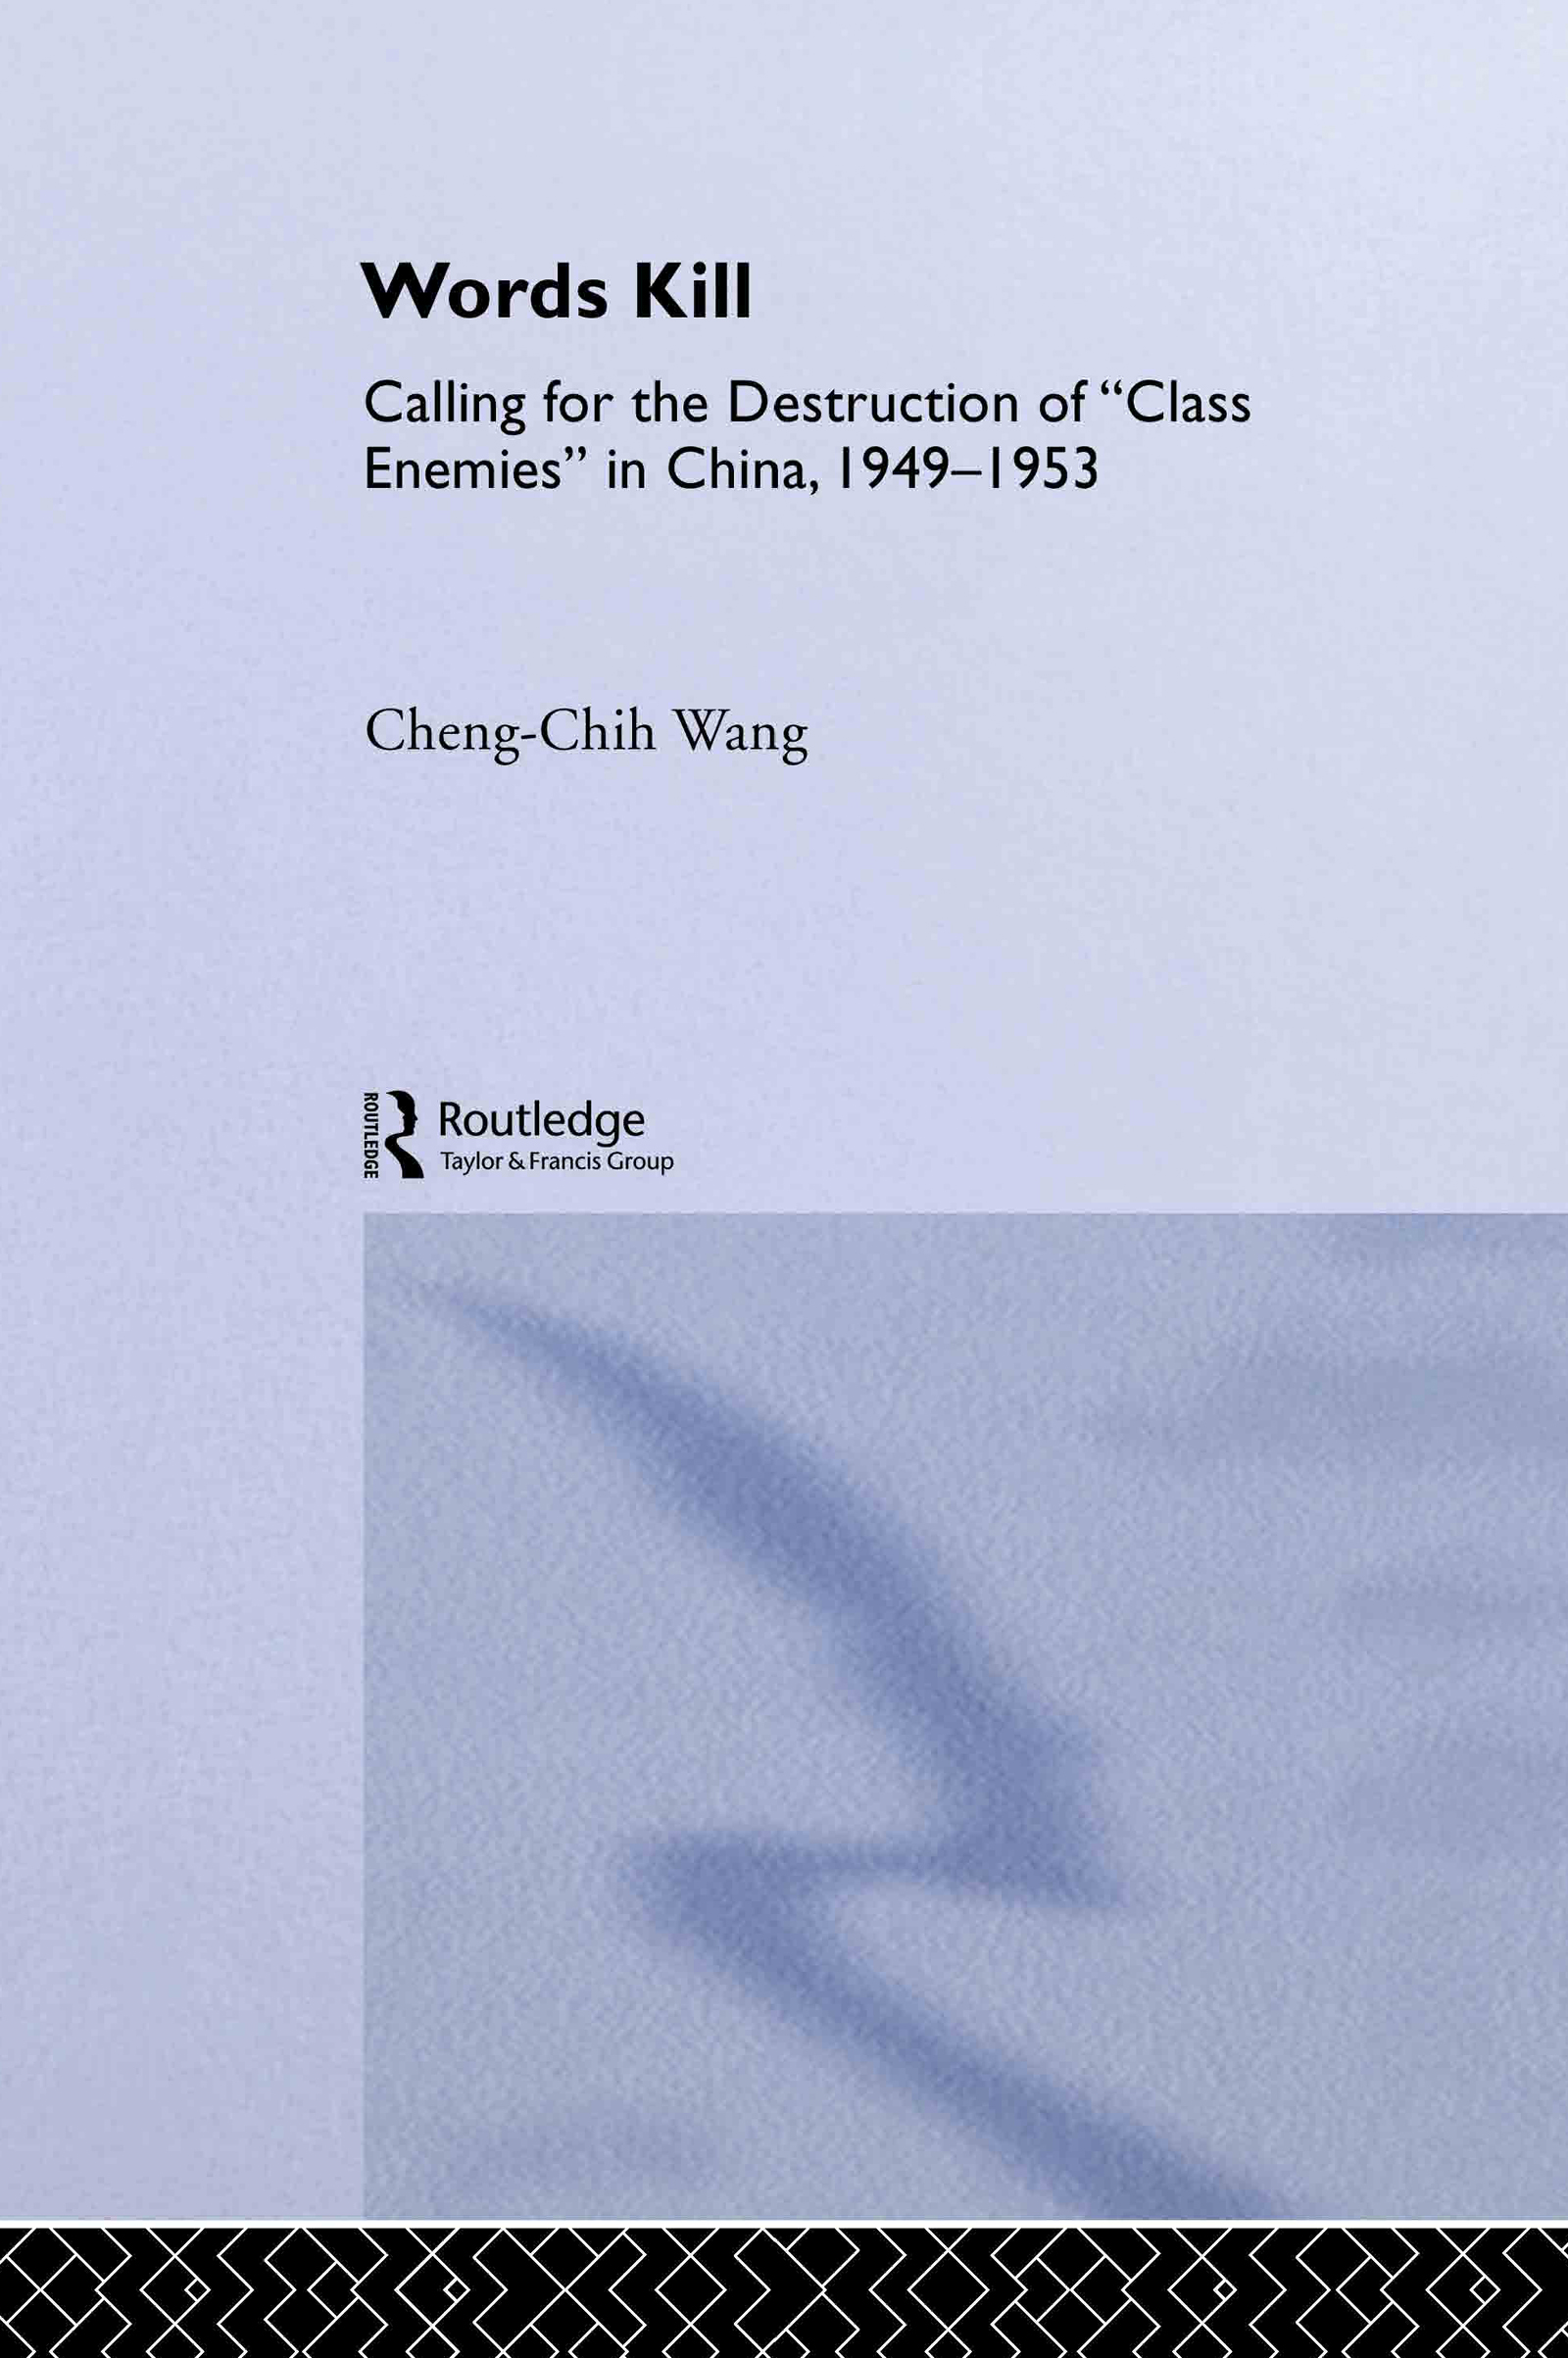 Words Kill: Calling for the Destruction of 'Class Enemies' in China, 1949-1953 book cover